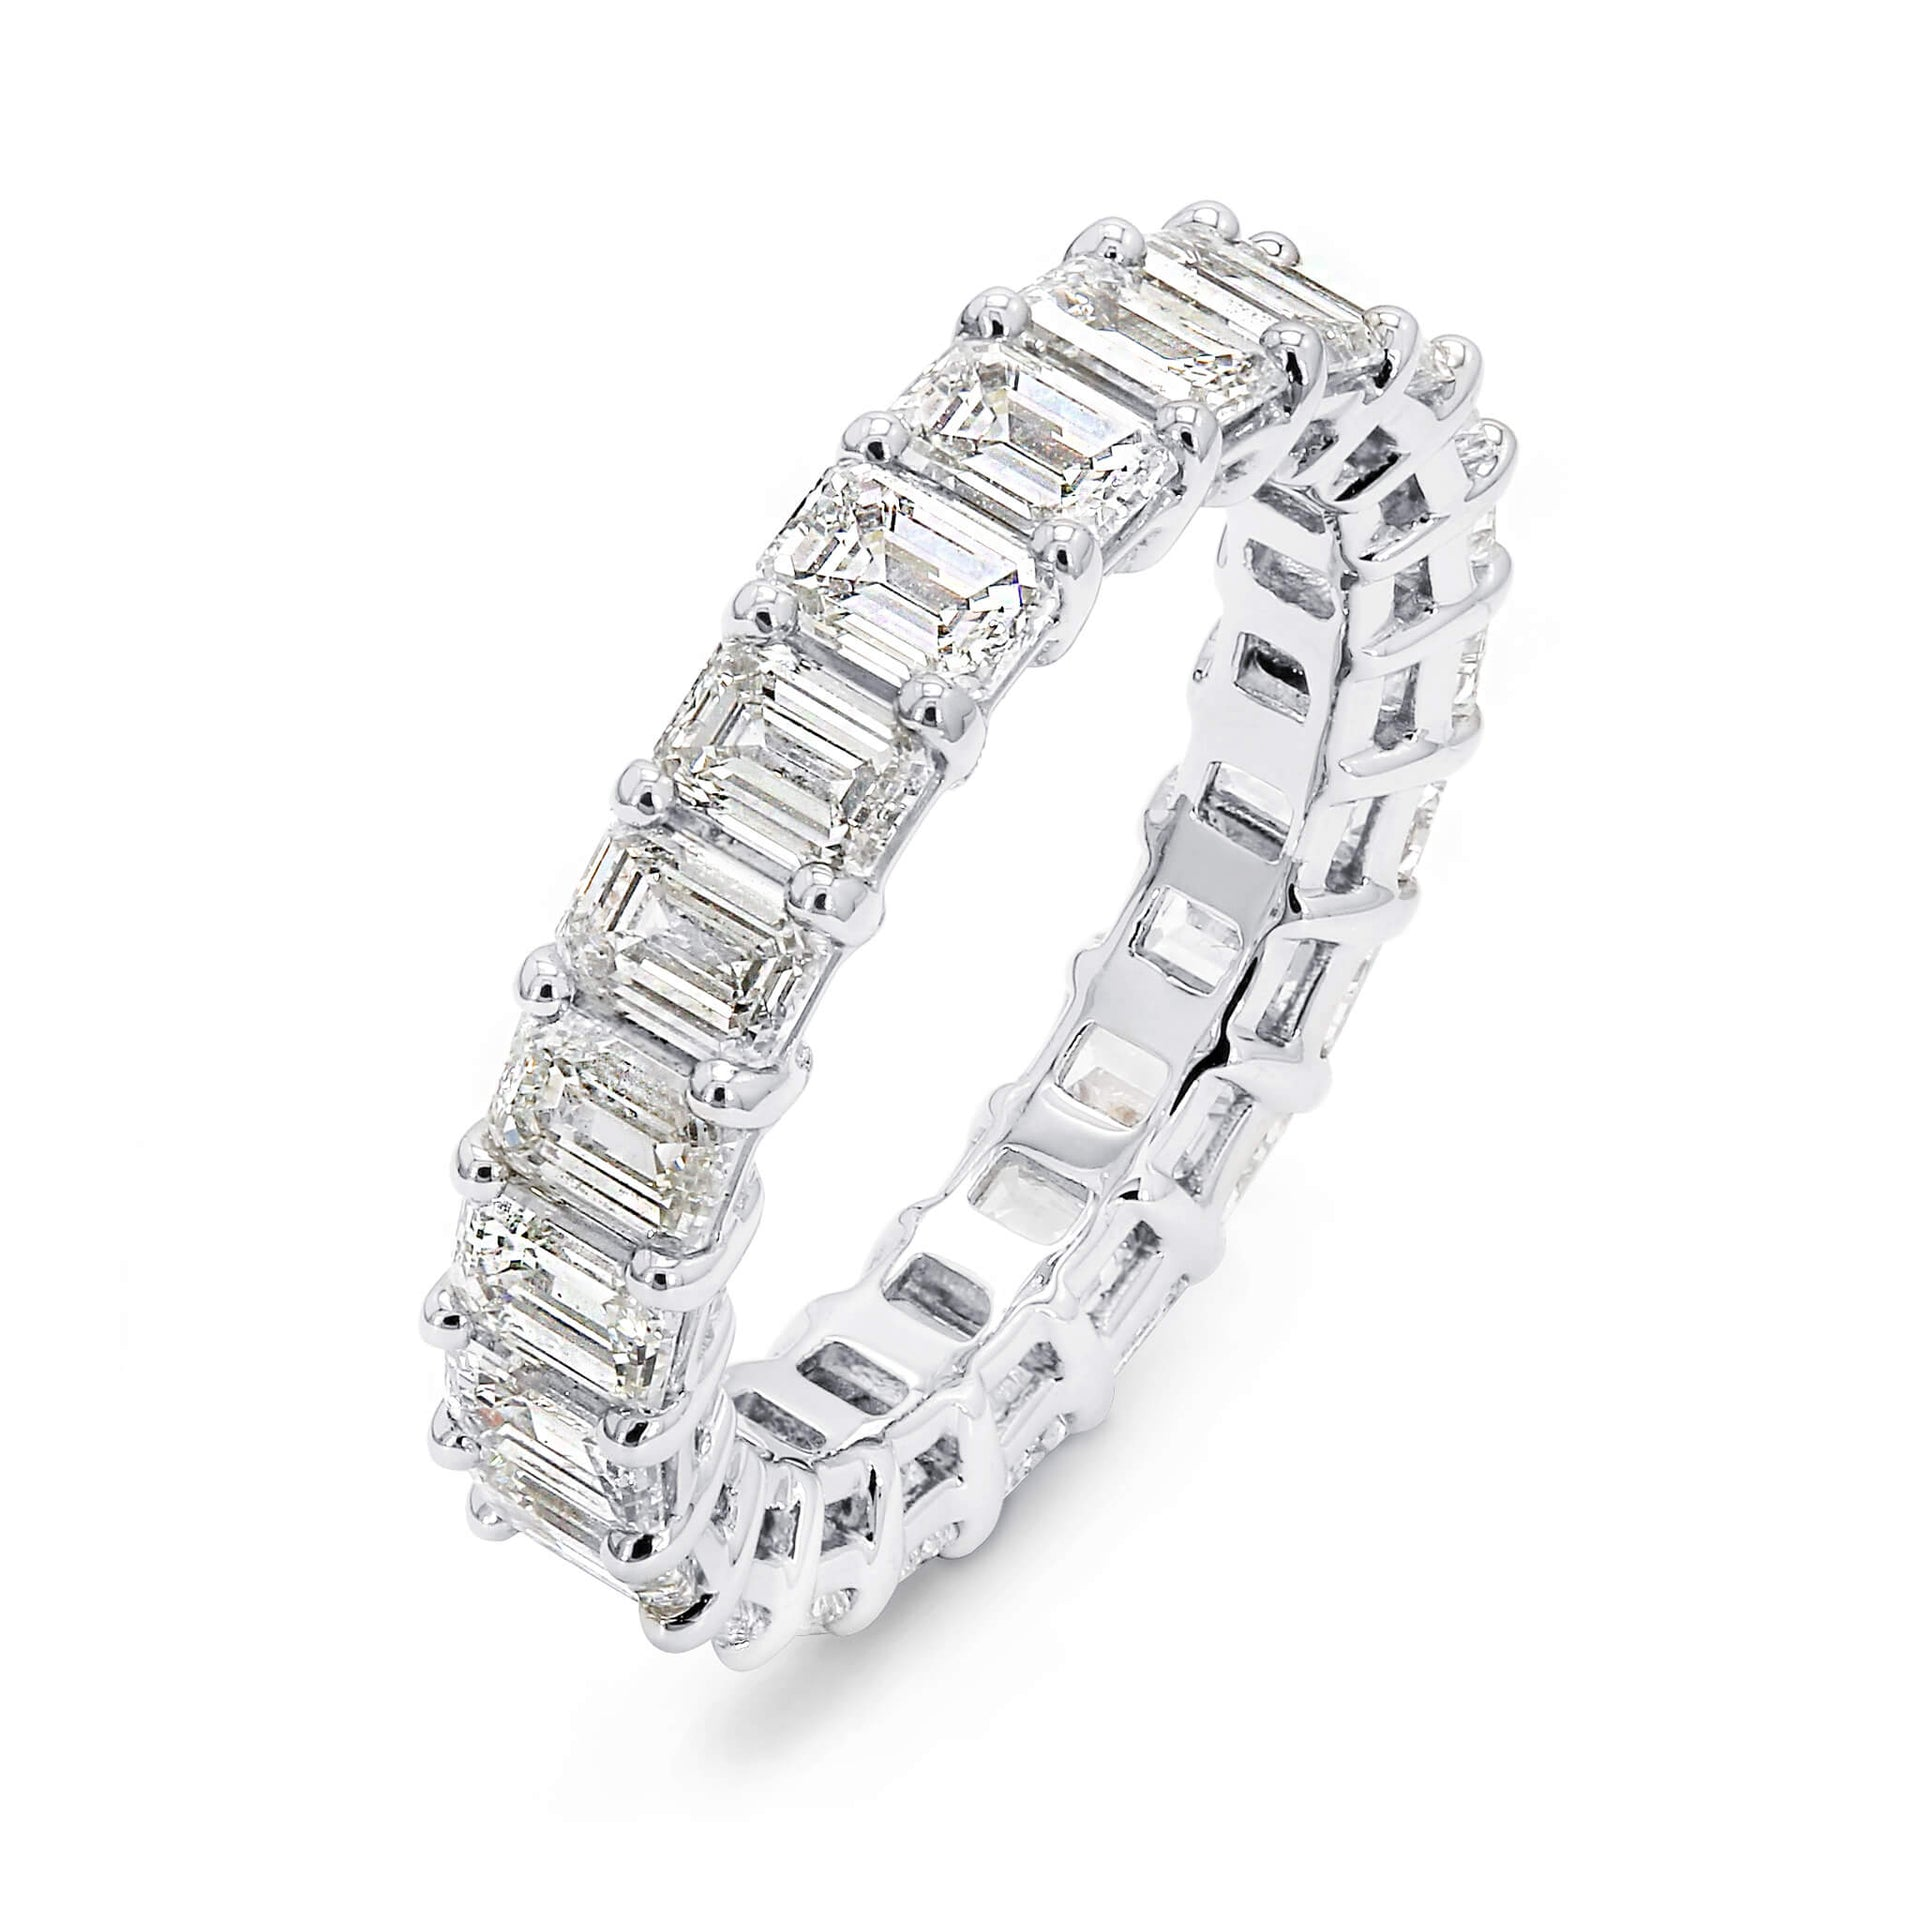 5.00 Carat Emerald Cut Eternity Diamond Ring in Platinum 3D View